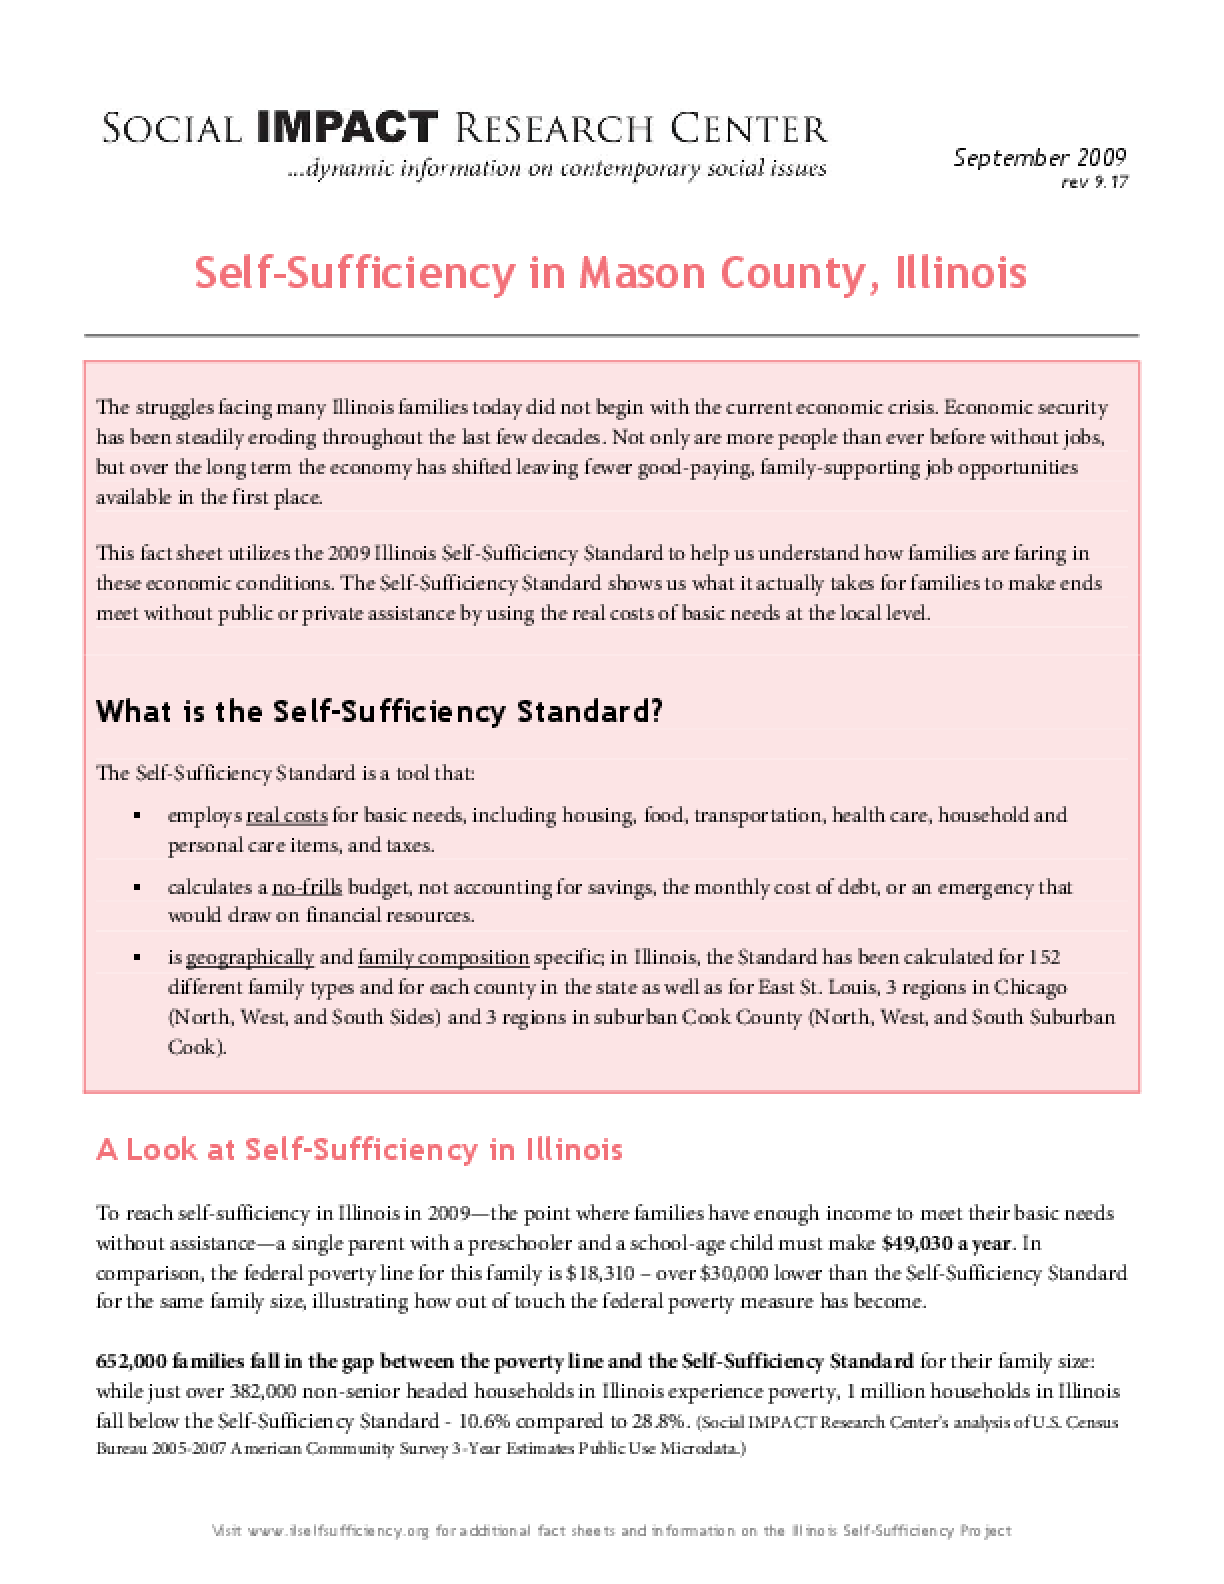 Self-Sufficiency in Mason County, Illinois